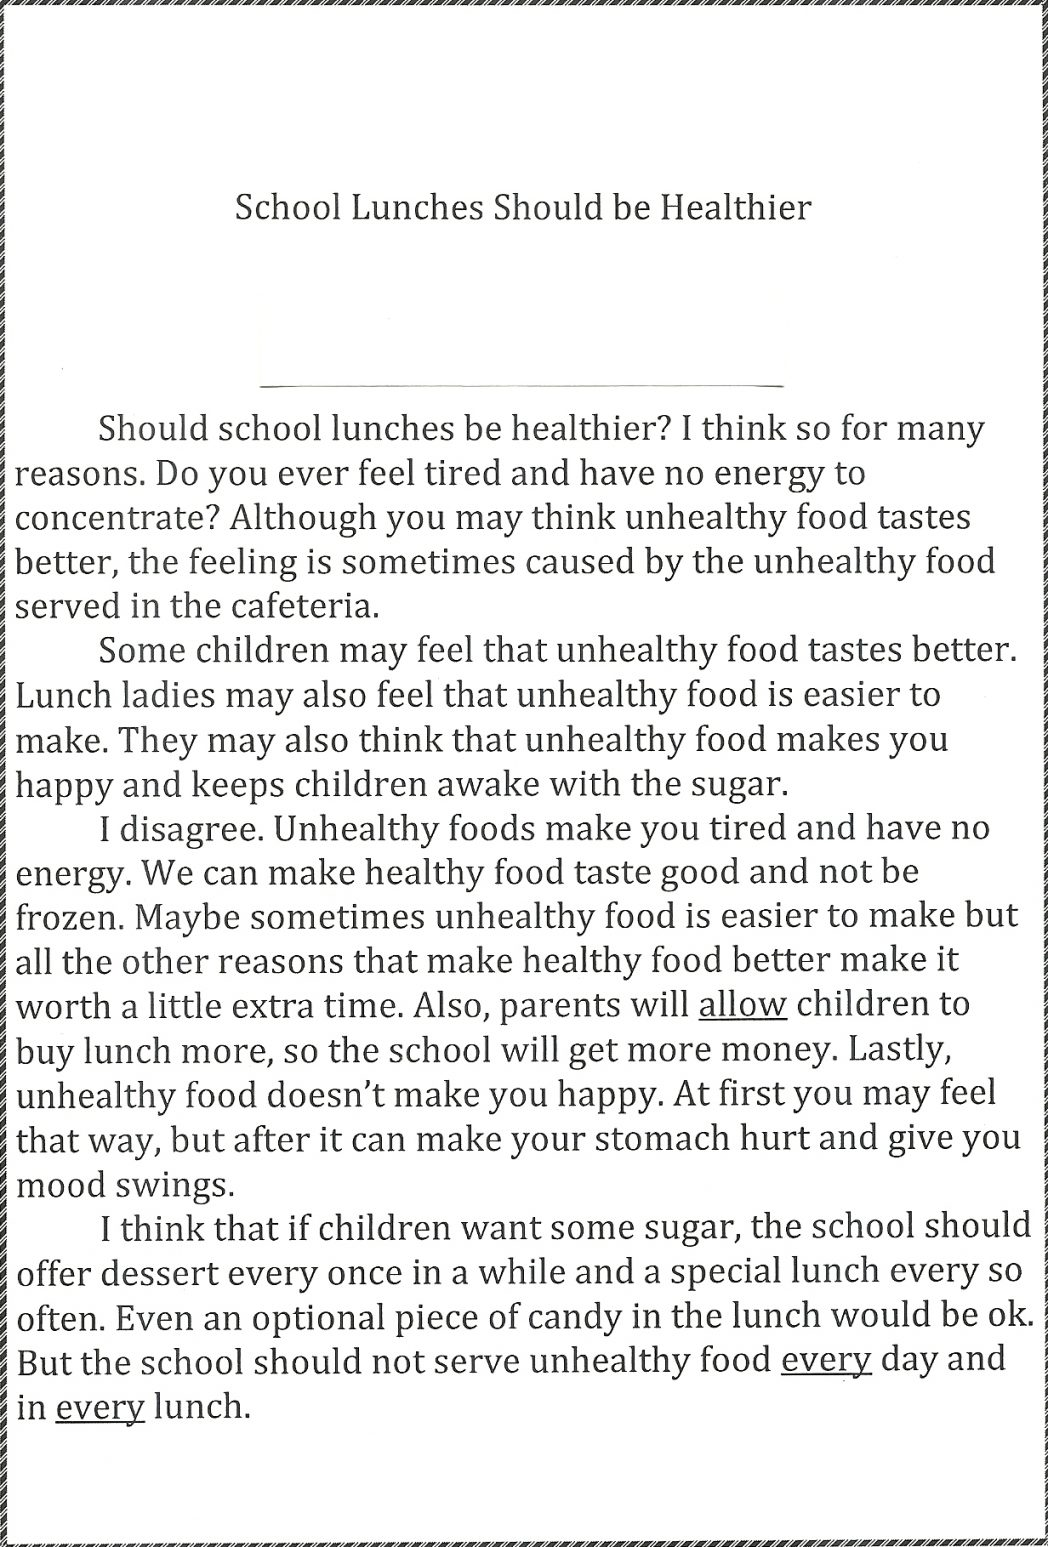 010 9th Grade Persuasive Essay Thdeal Essays Cell Phones Should Not Allowedn School Thoughtsonschoollu Cellphones Argumentative Banned Reasons Why Mobile 1048x1547 Unique Be In Schools Full